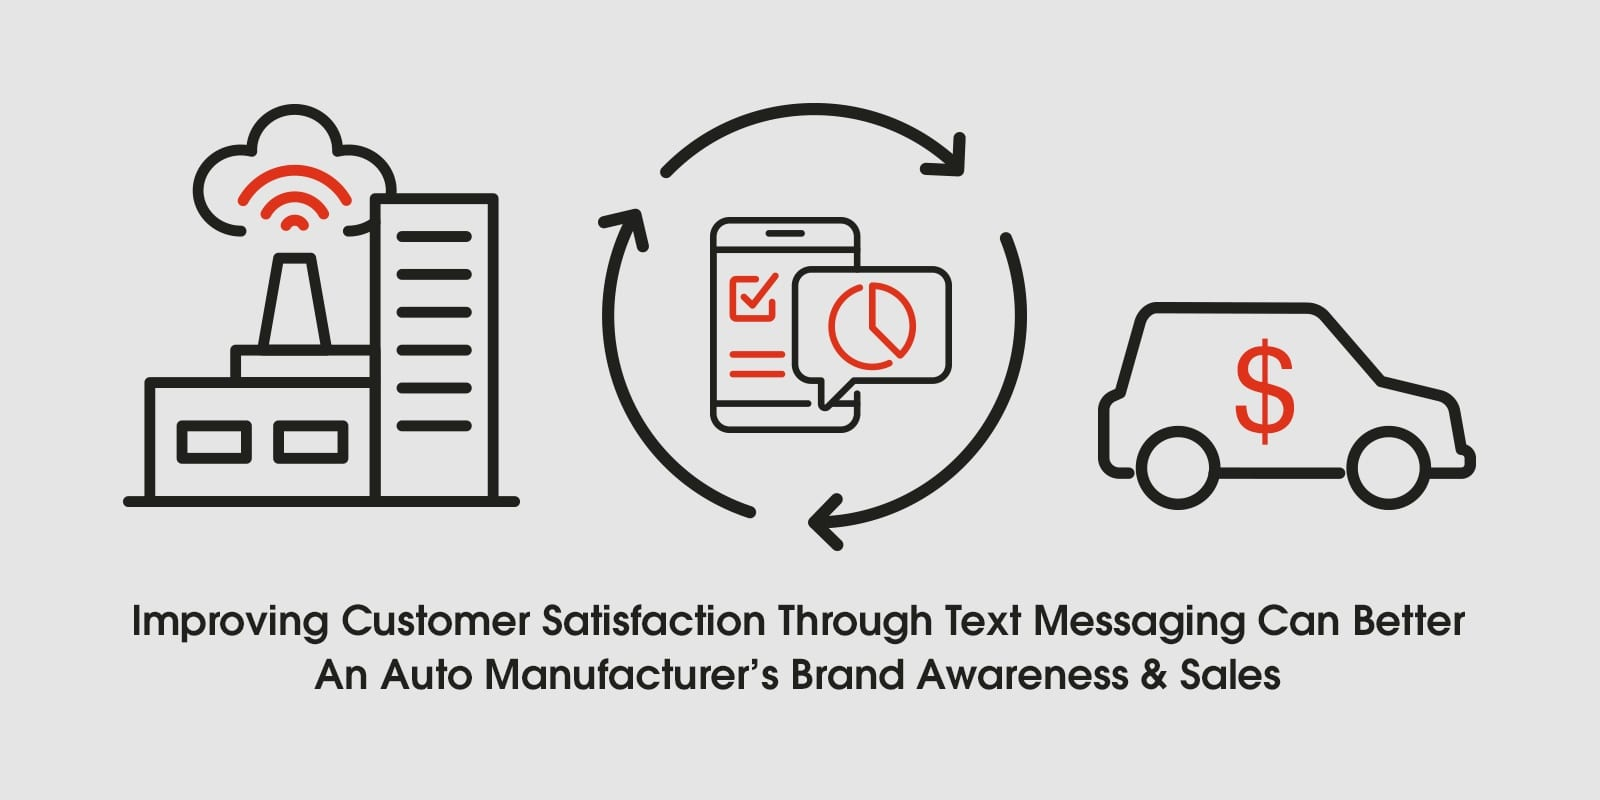 how texting improves customer satisfaction and sales, plus why auto manufacturers should care